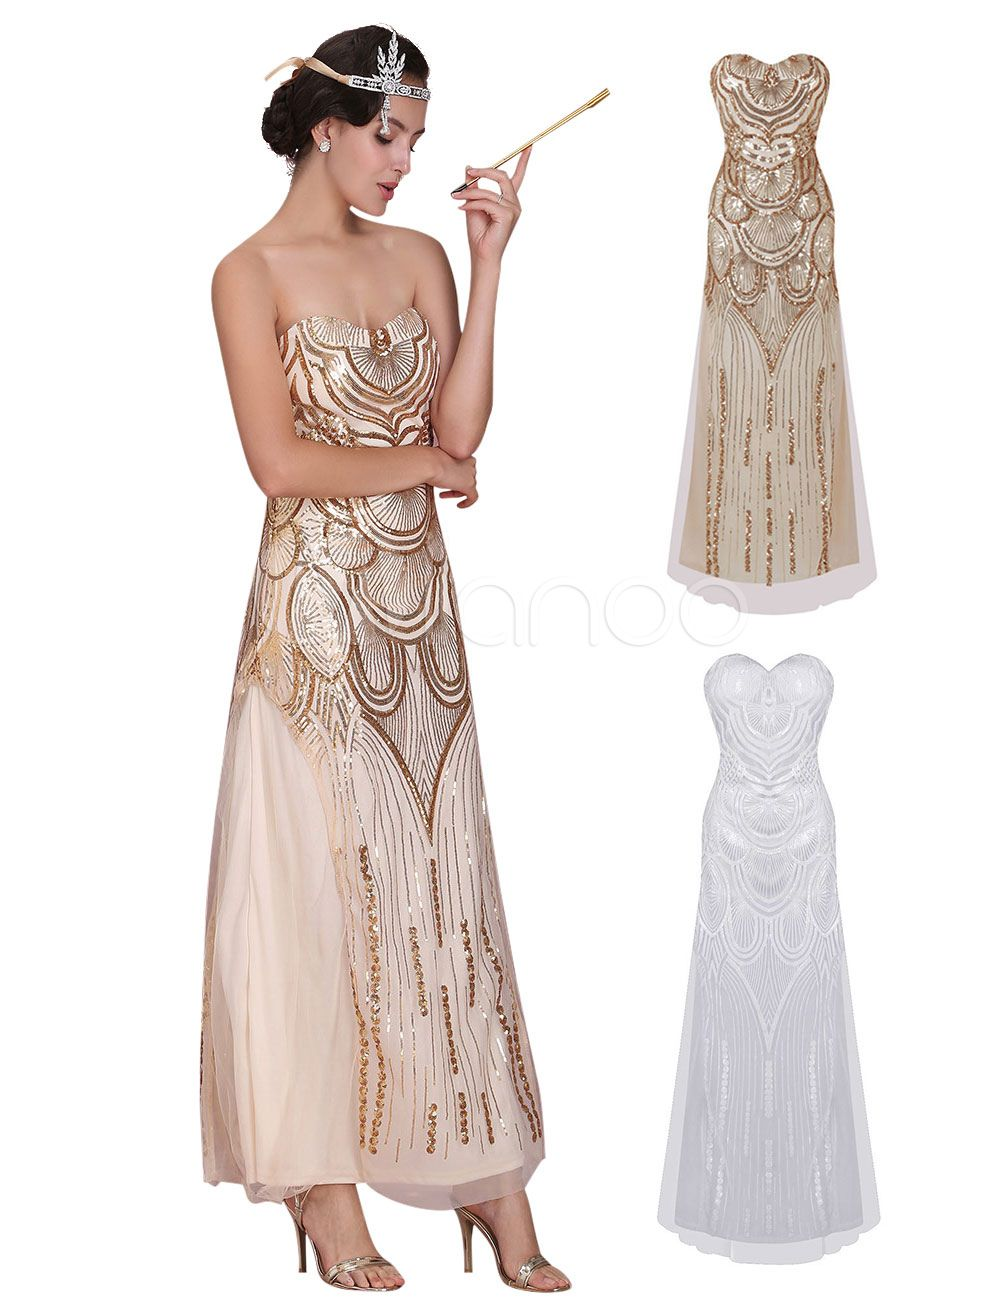 311389b8e93 Great Gatsby Flapper Dress 1920s Vintage Costume Women s Sequined Gold Maxi  Dress Halloween - Price concerns me about quality